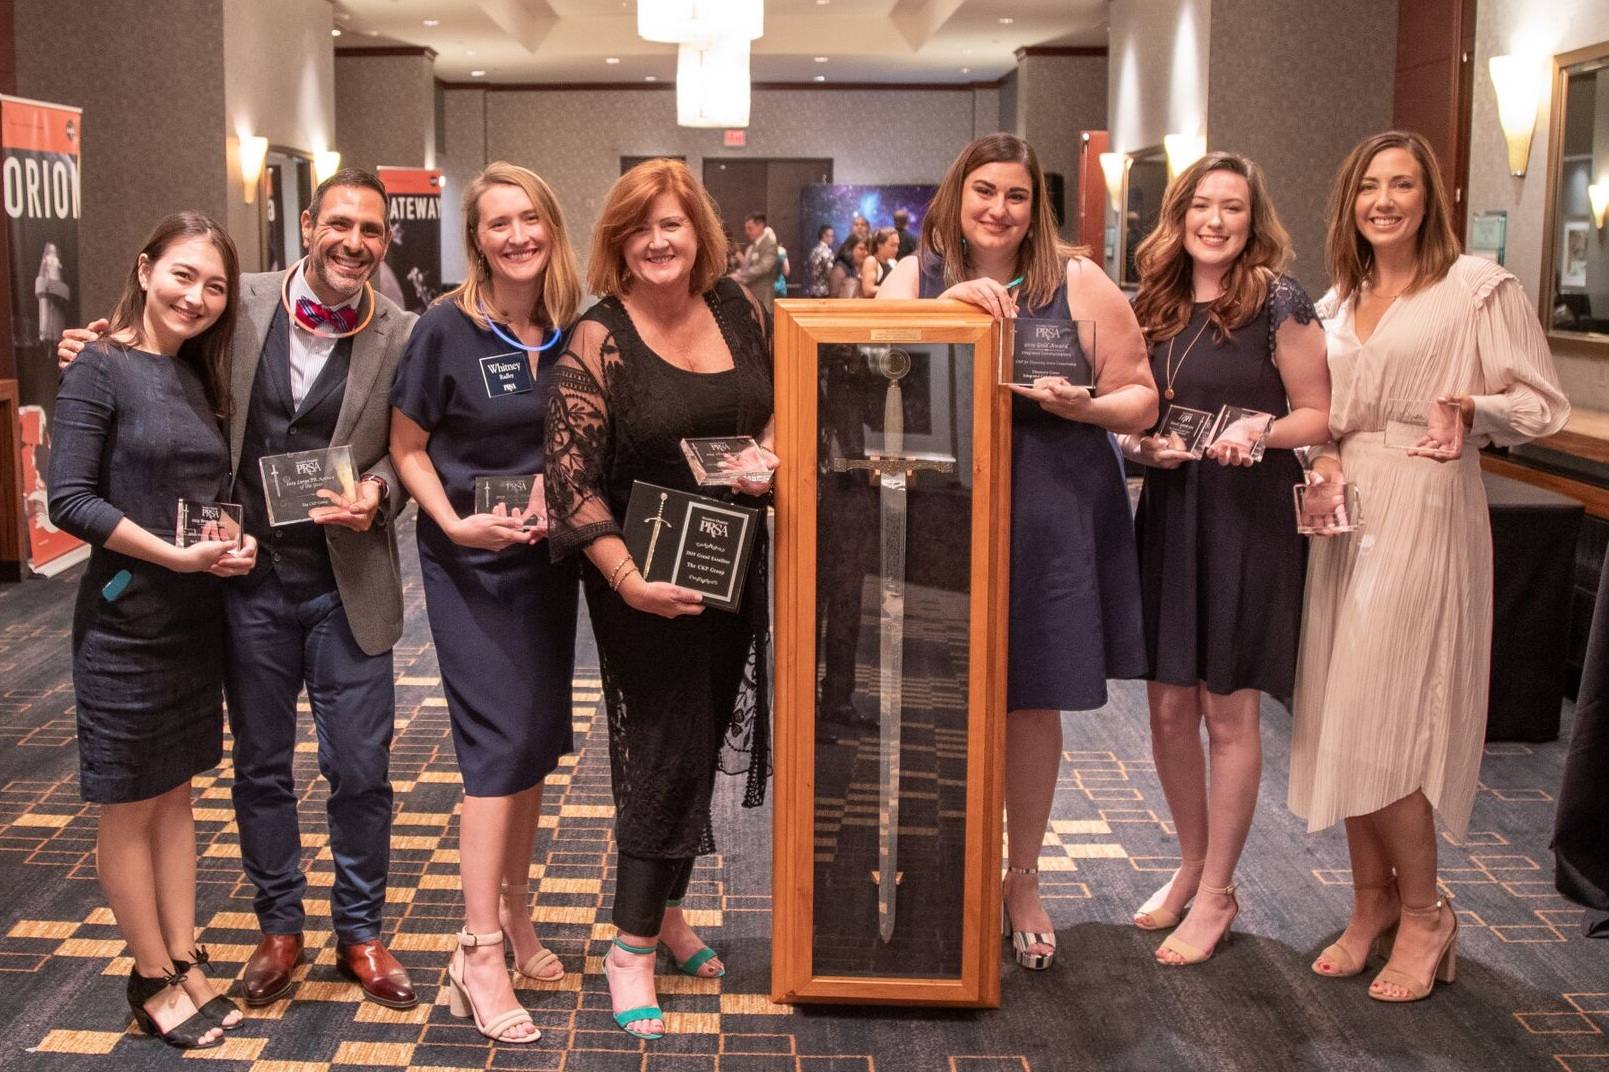 The CKP team accepts 12 awards at PRSA Houston's 2019 Excalibur Awards event